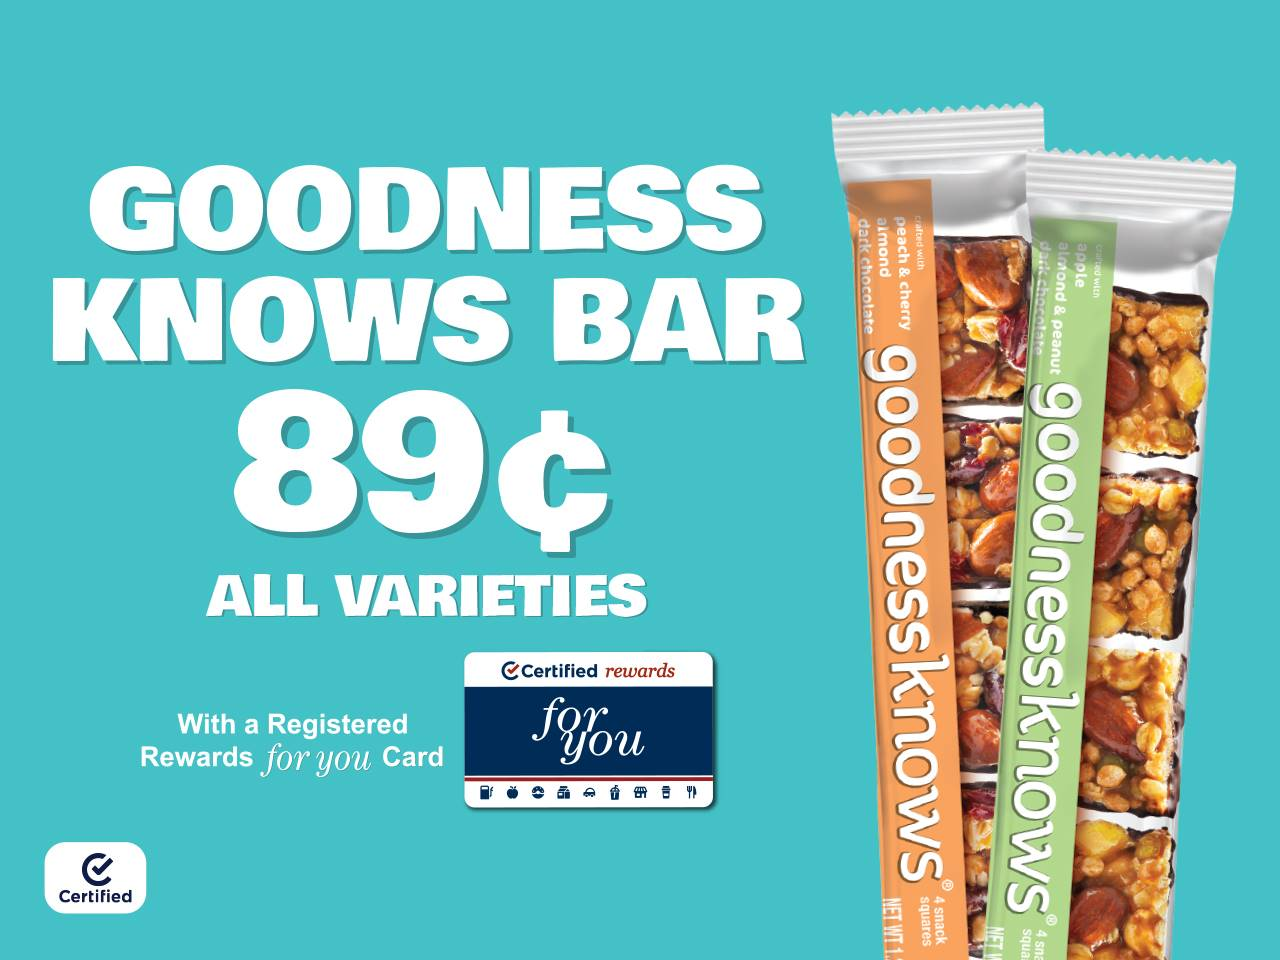 GoodnessKnows Bars for $.89 with Registered Rewards For You Cards